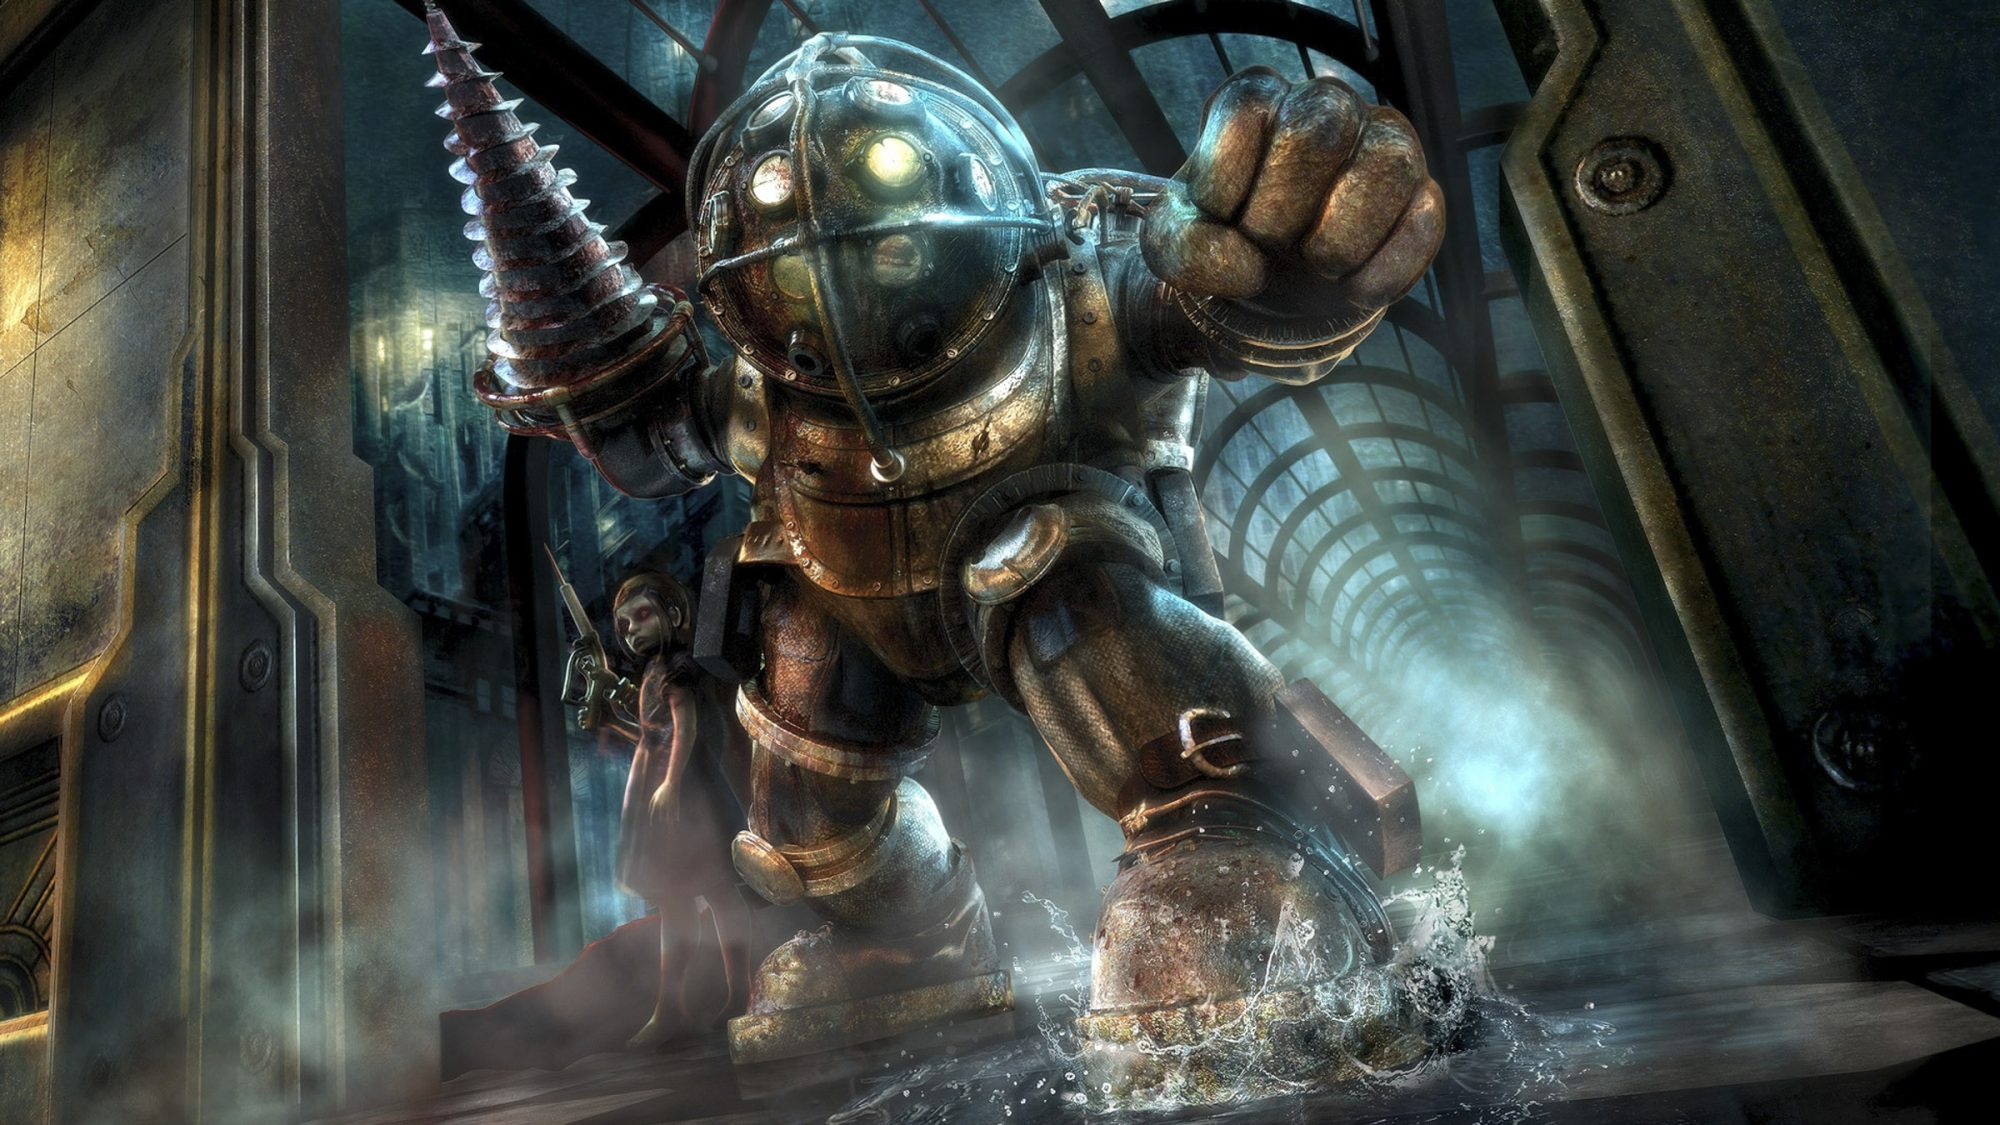 'BioShock 4' will reportedly feature an open-world setting